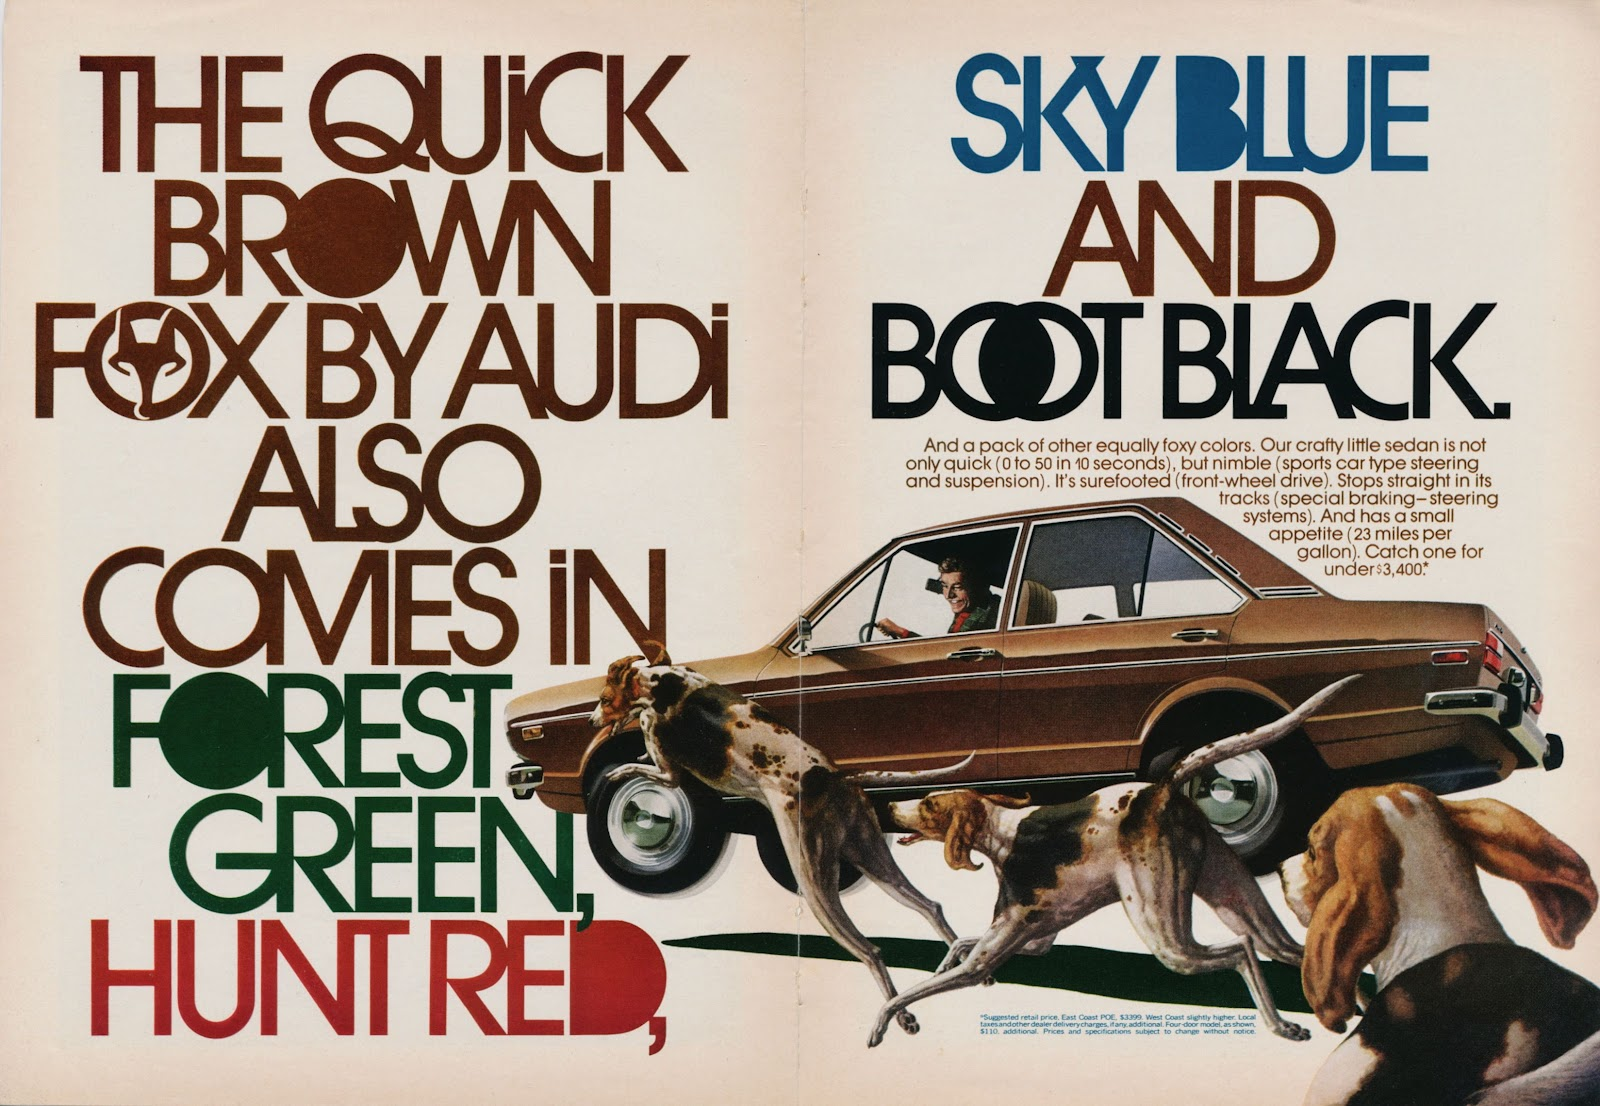 The Quick Brown Fox, a vintage ad by Audi